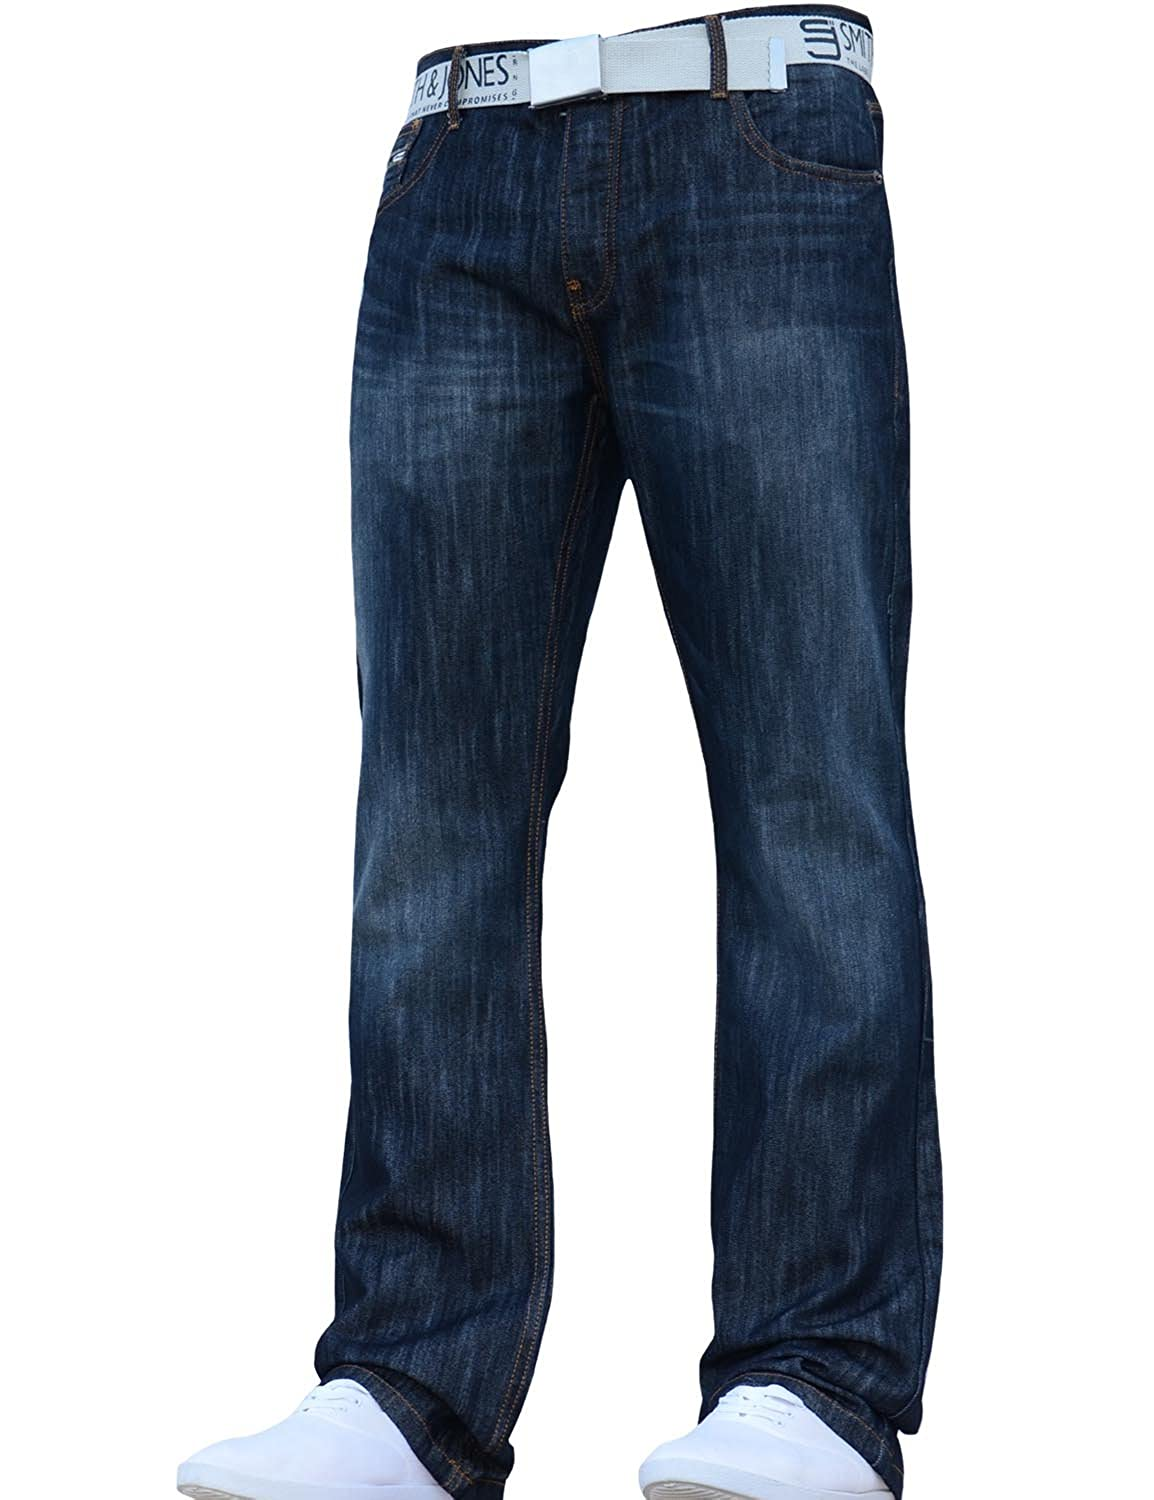 33a66288fc2 New Mens Smith and Jones Designer Branded Bootcut Fit Relaxed Denim Jeans  Pants Jeanbase  Amazon.co.uk  Clothing